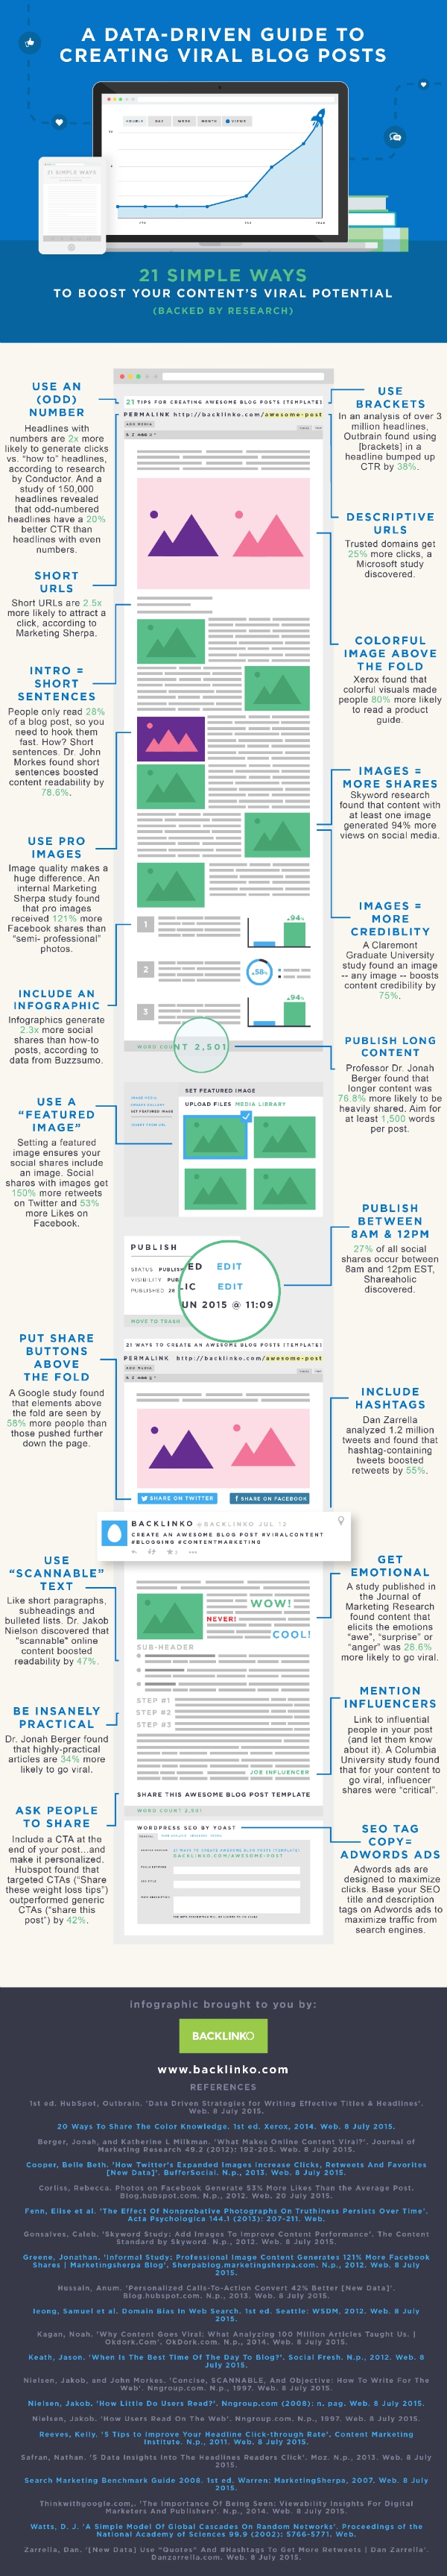 viral potential infographic